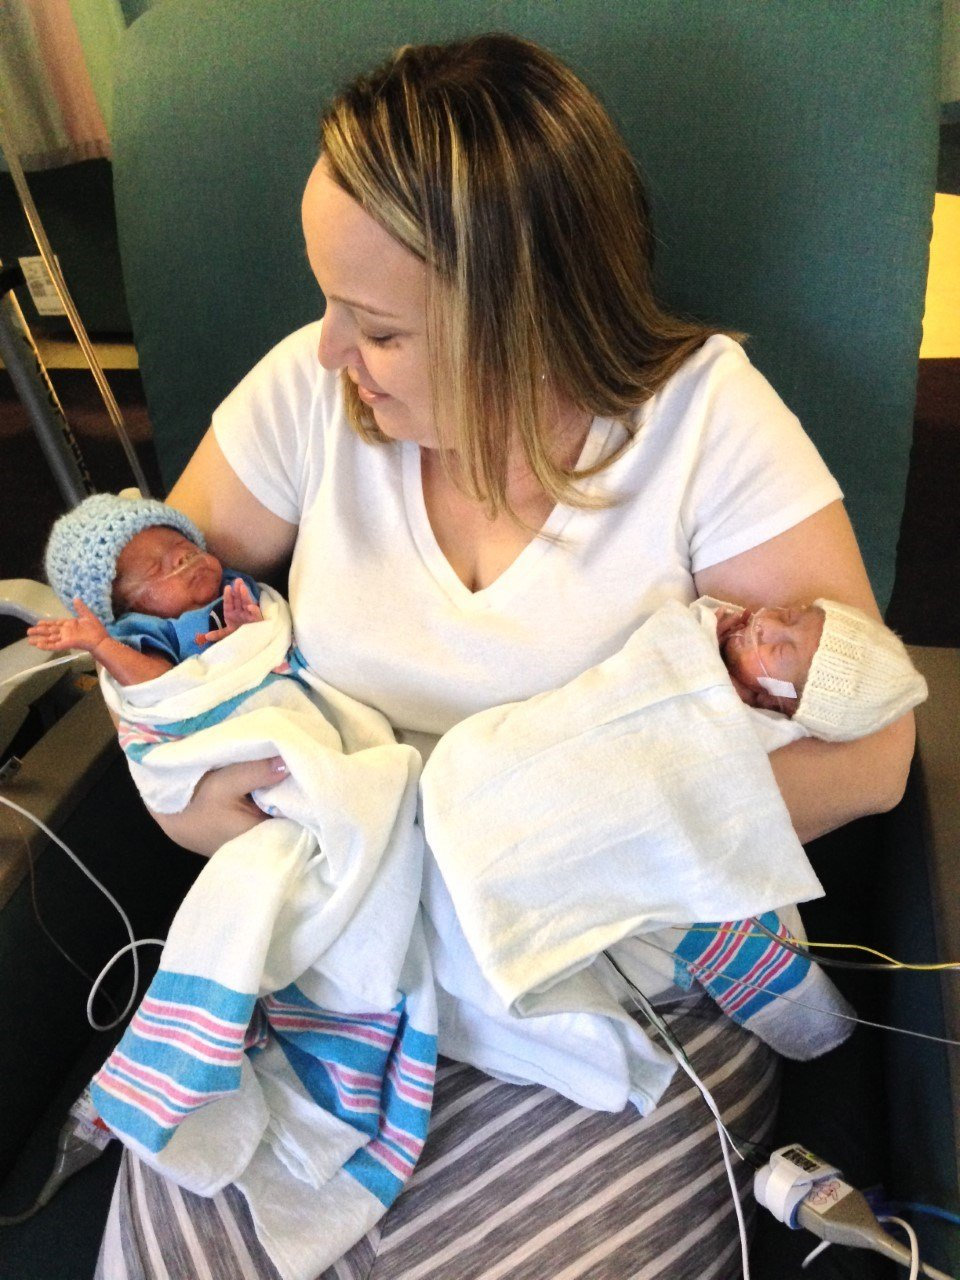 Cathy Rodriguez on her first Mother's Day in 2014 holding premature twins, Marcos and Mateo (Courtesy: Cathy Rodriguez).